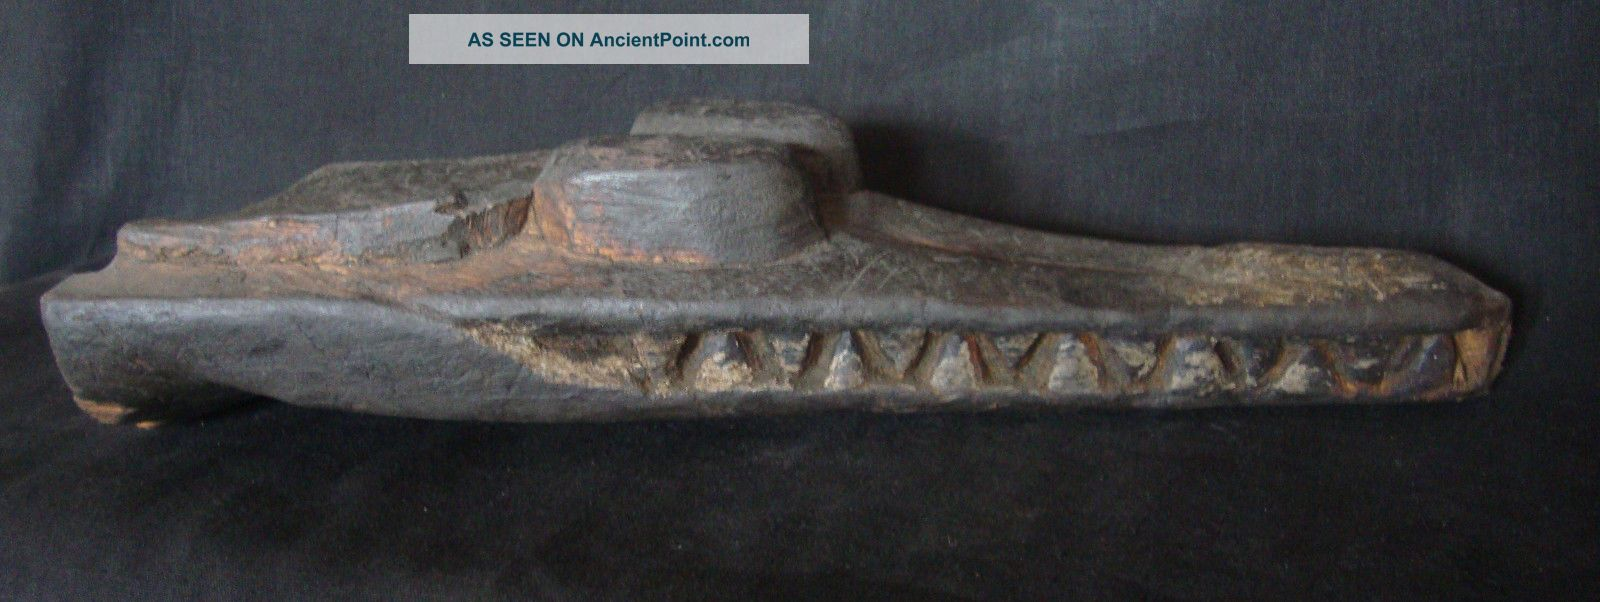 Old & Authentic Carved Crocodile Canoe Prow Trad.  Mid.  Sepik Papua Guinea. Pacific Islands & Oceania photo